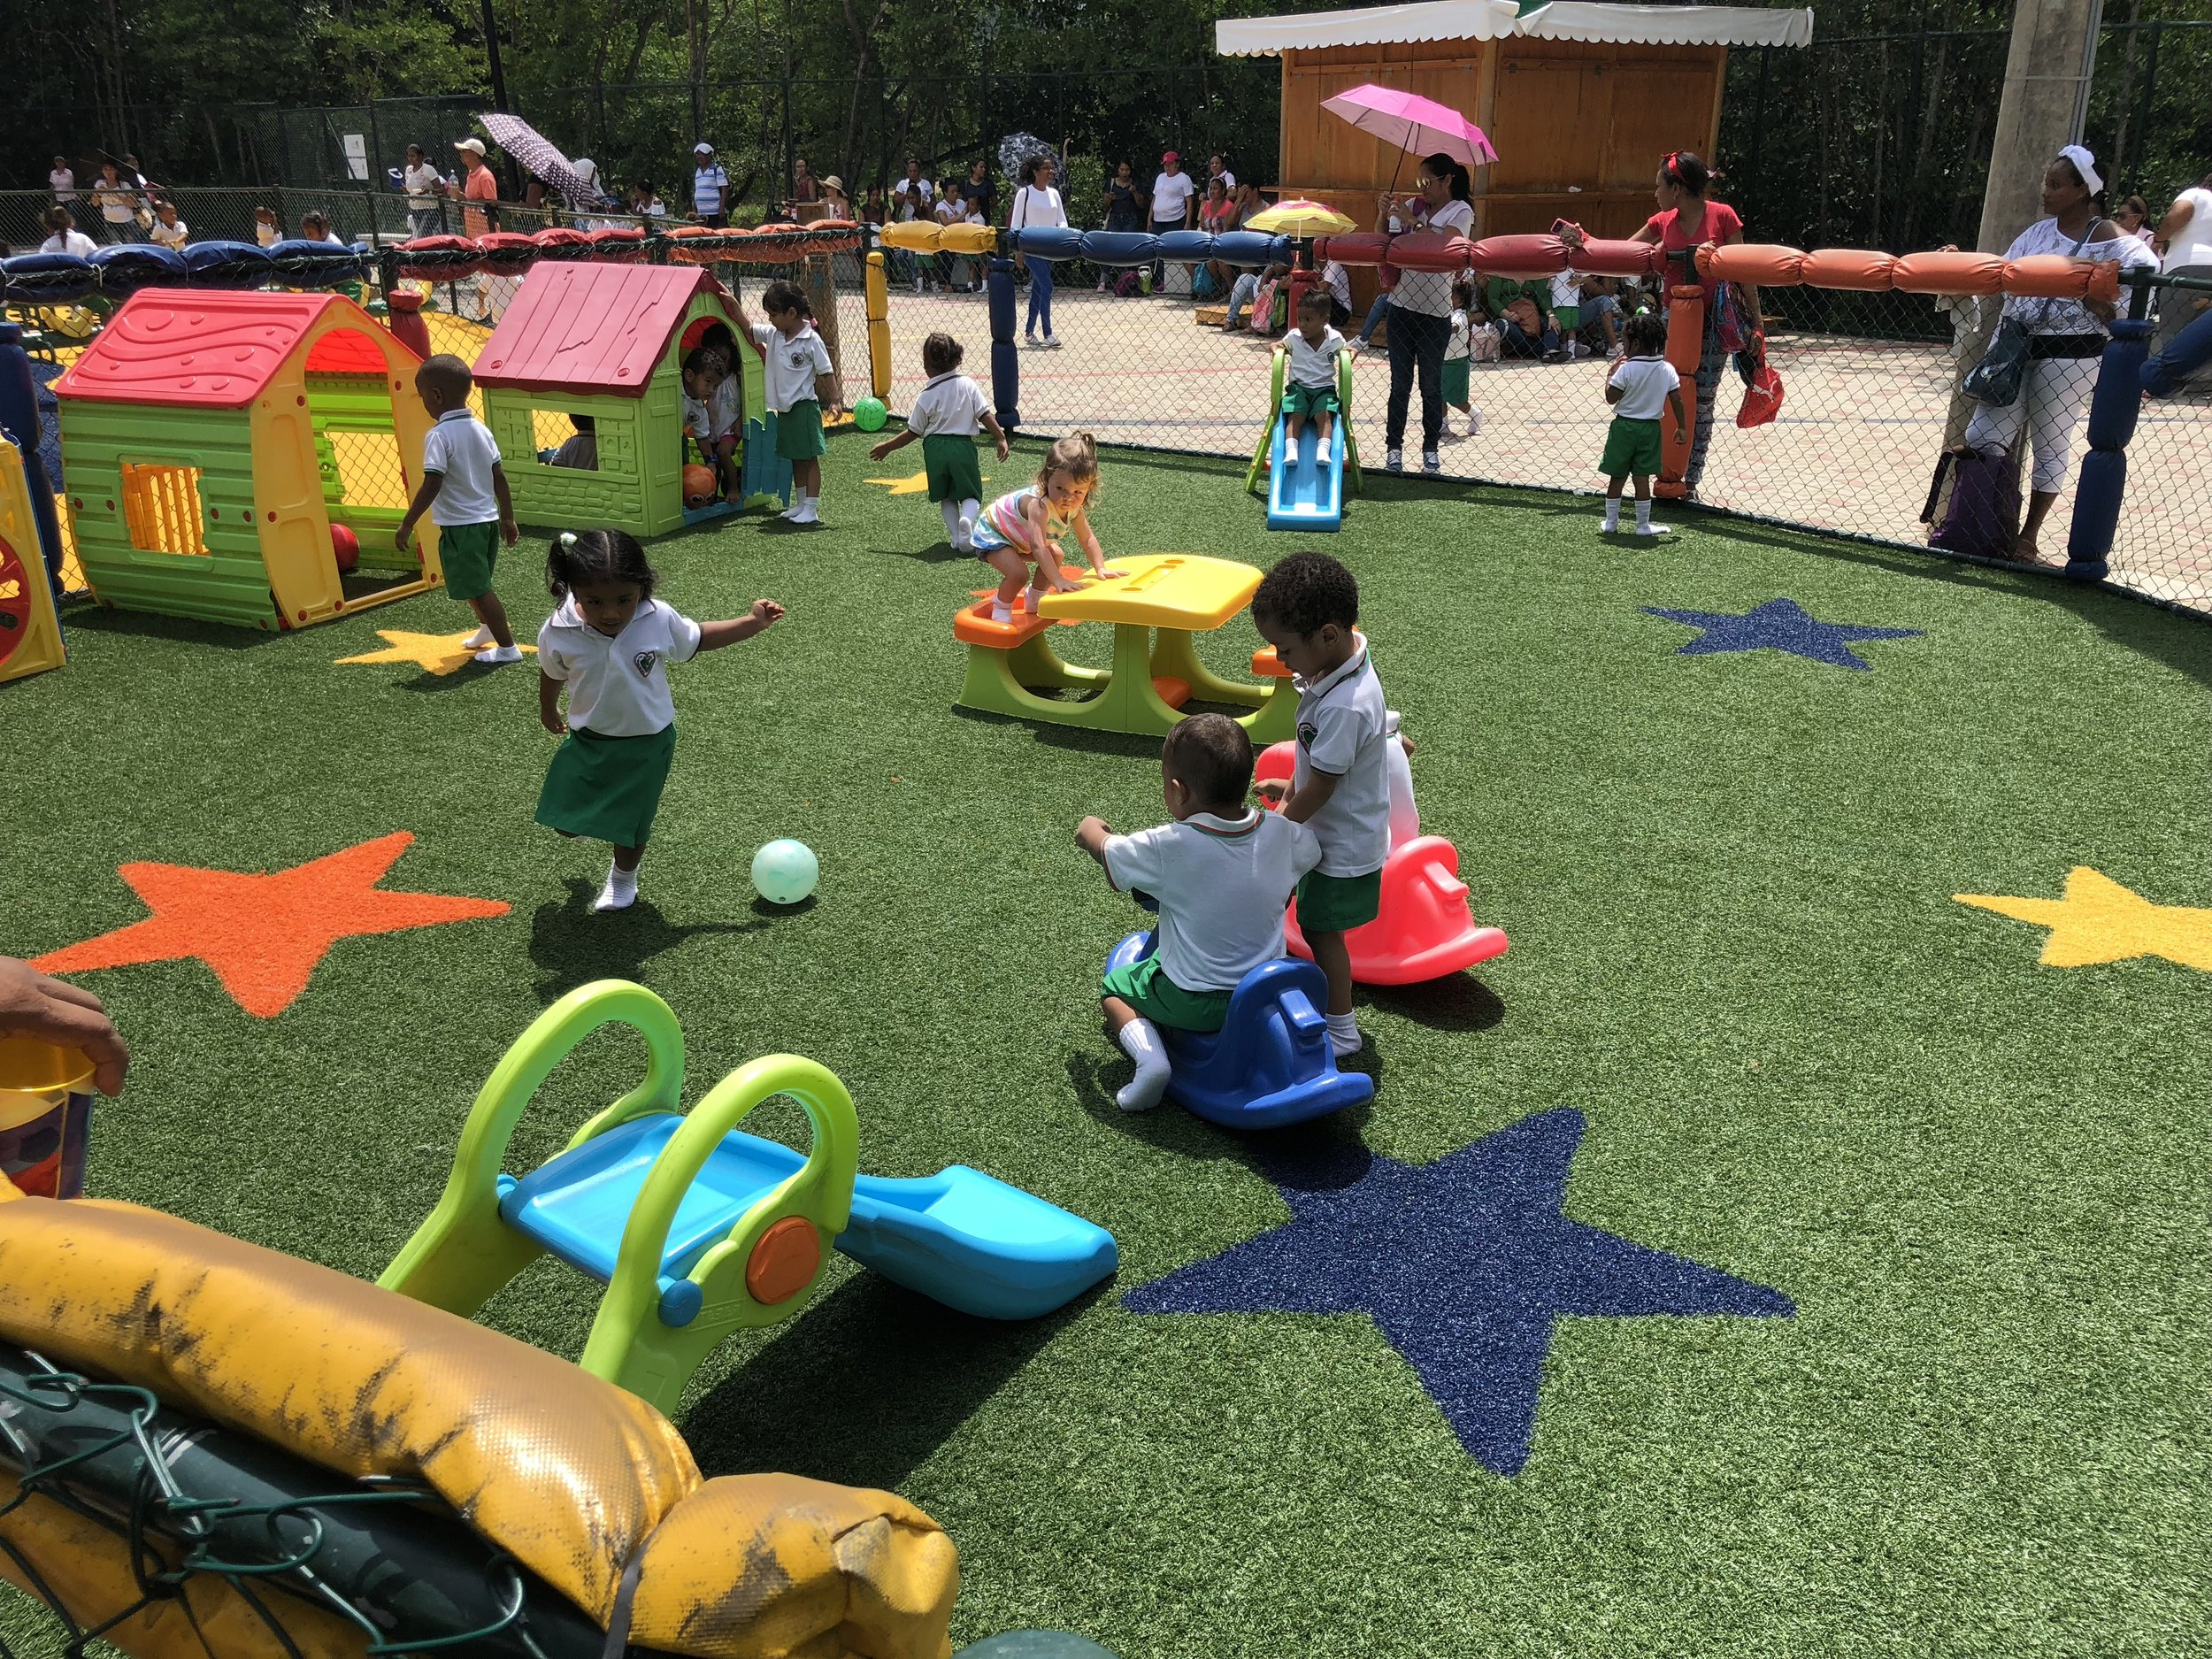 There is a separate play area for the kiddos who are under 100 cm.